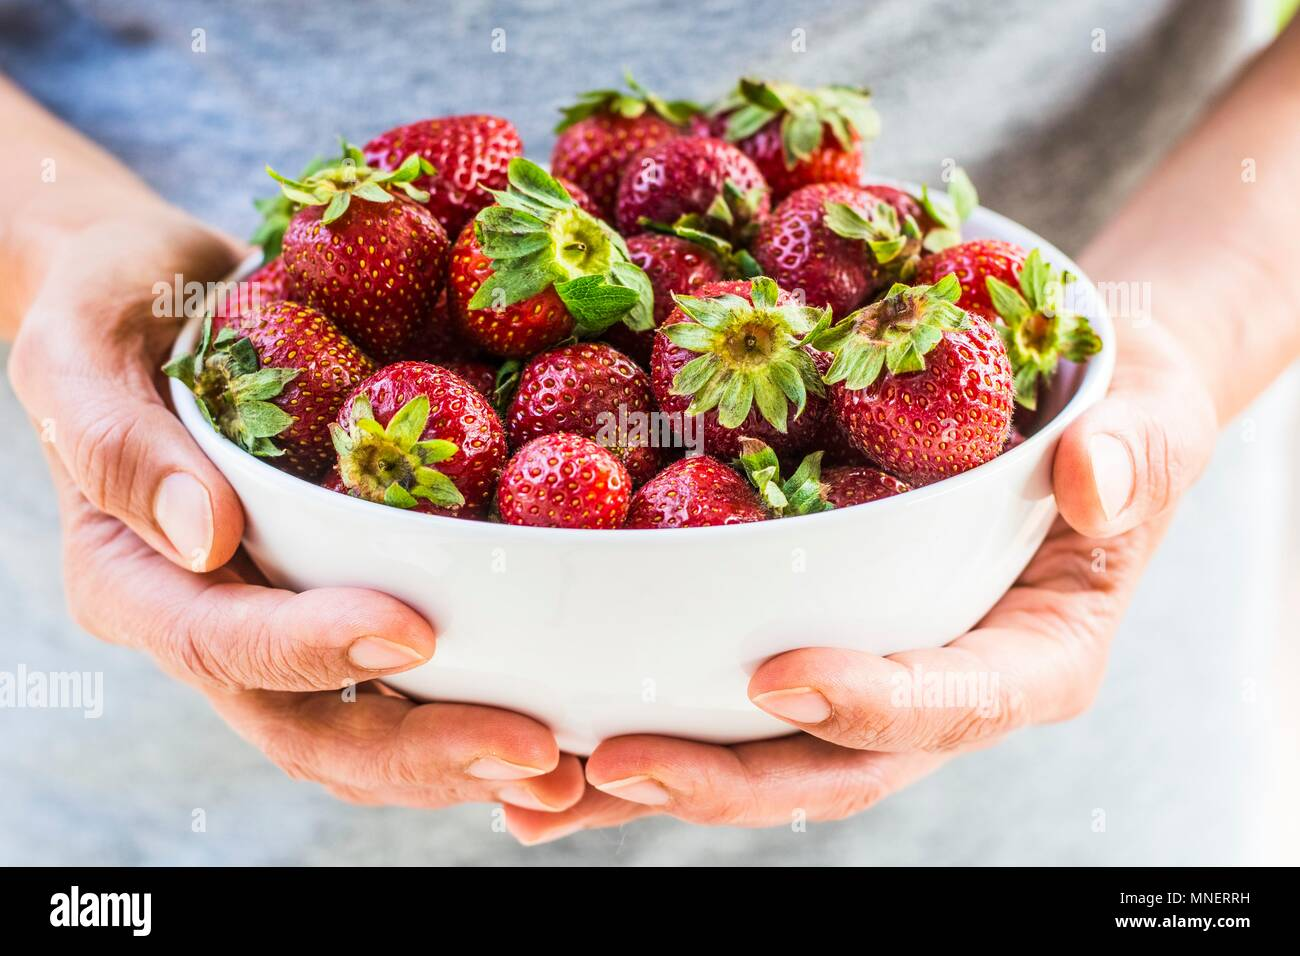 Hands holding bowl of fresh strawberries - Stock Image